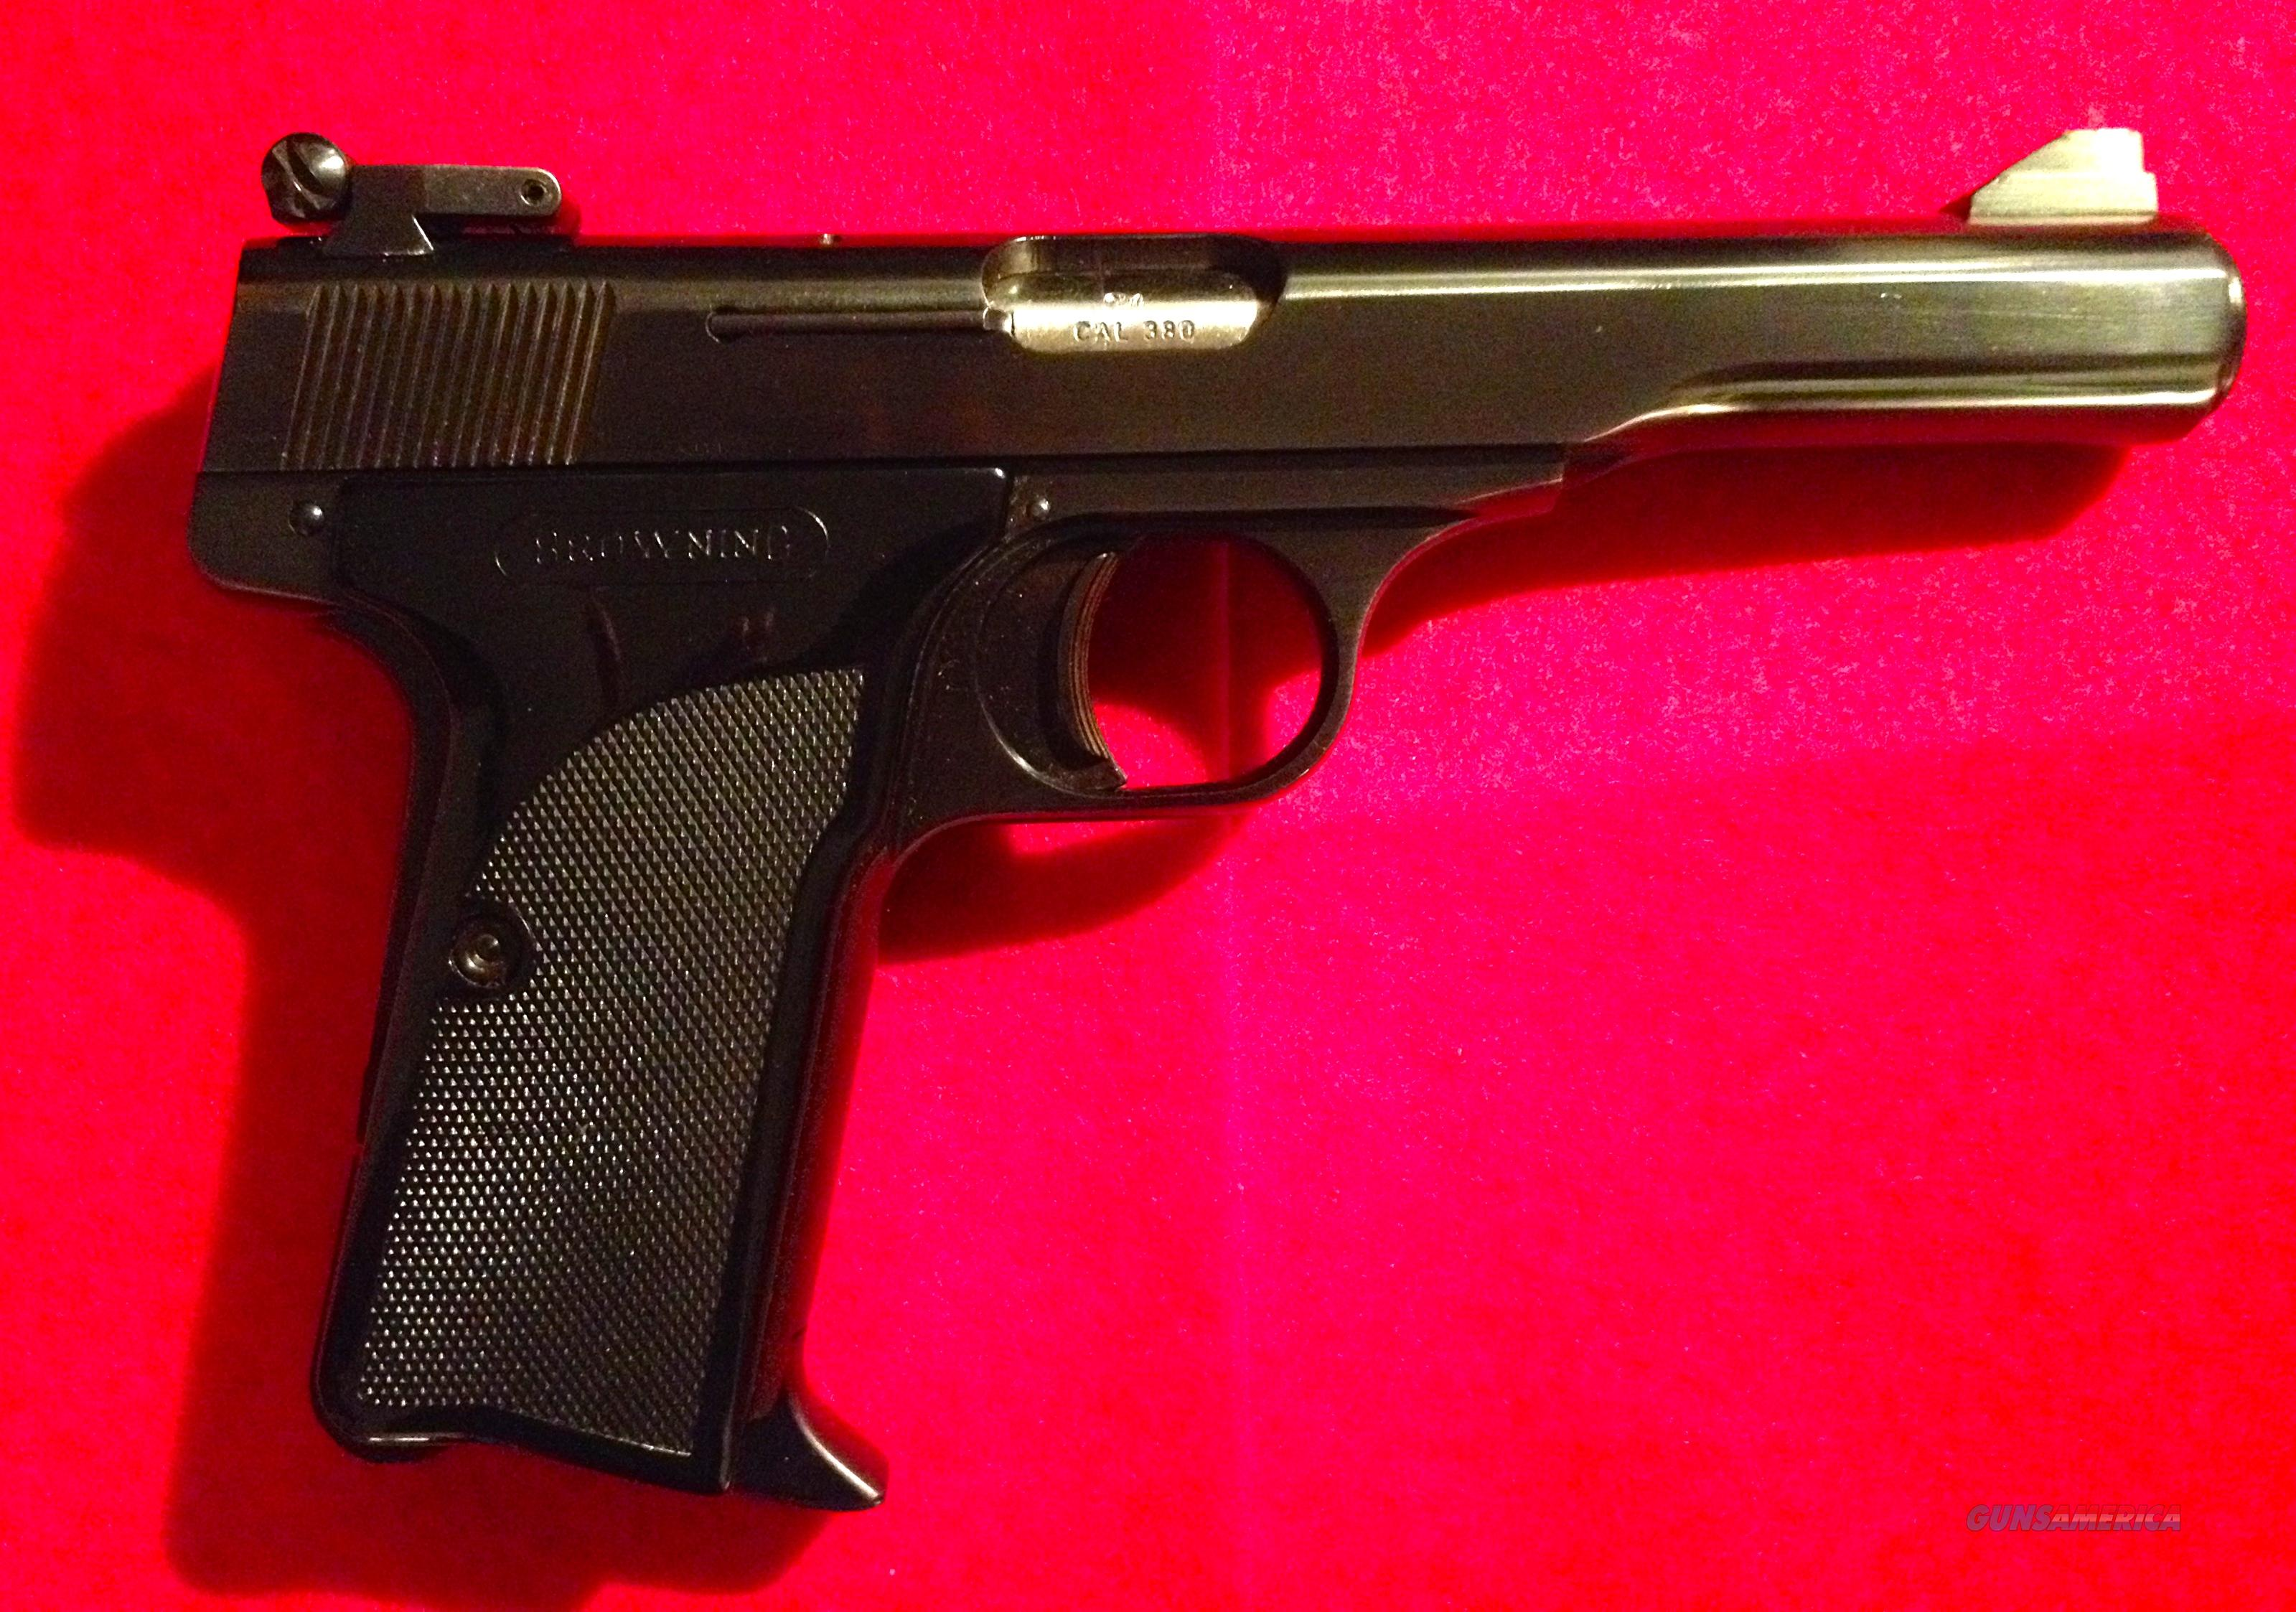 Browning FN  Model 10/71  Cal 380  Guns > Pistols > Browning Pistols > Other Autos